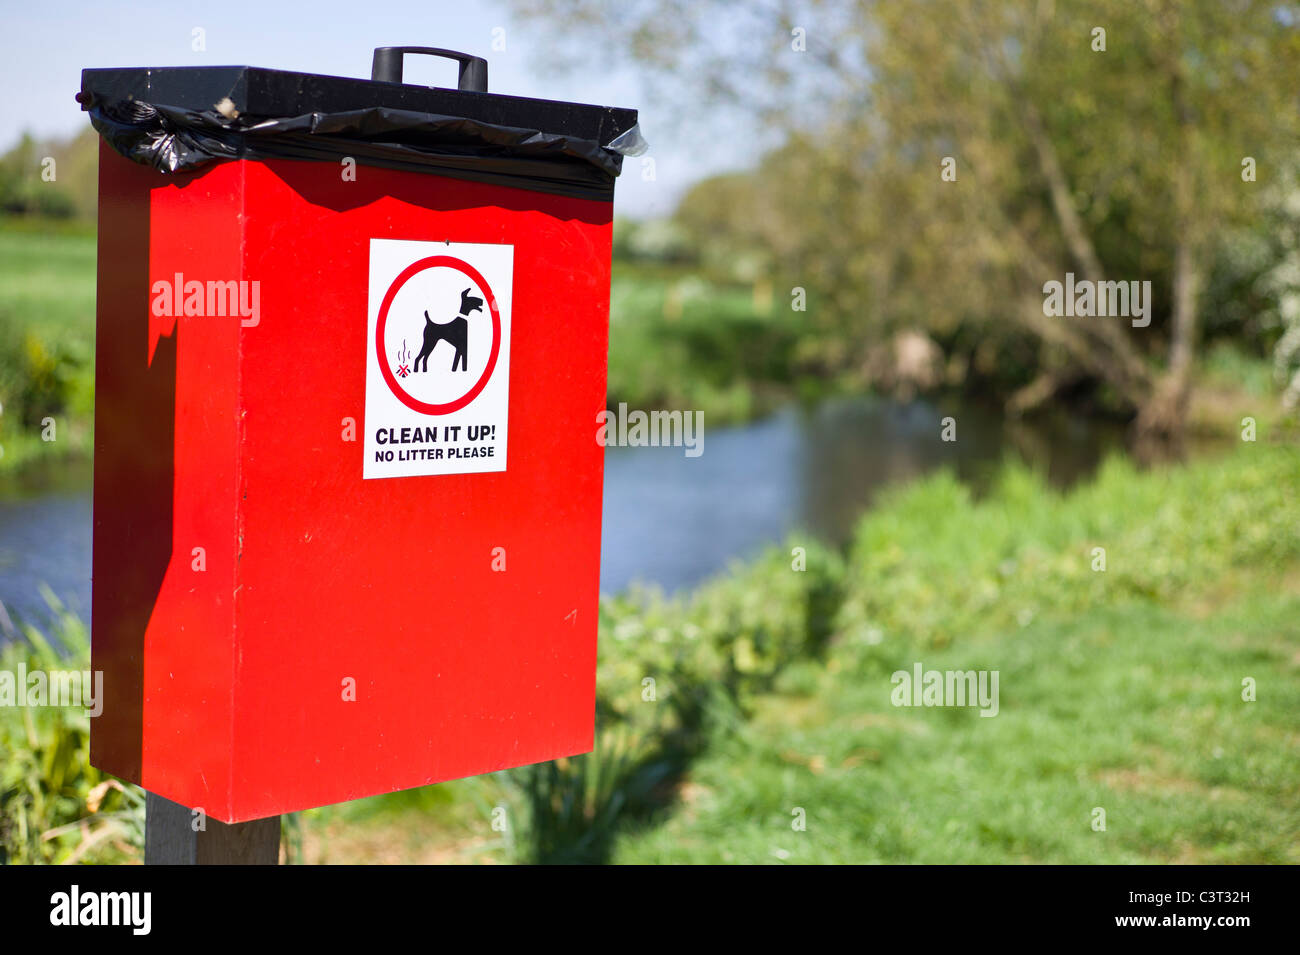 Refuse bin for dog litter in a country lane - Stock Image